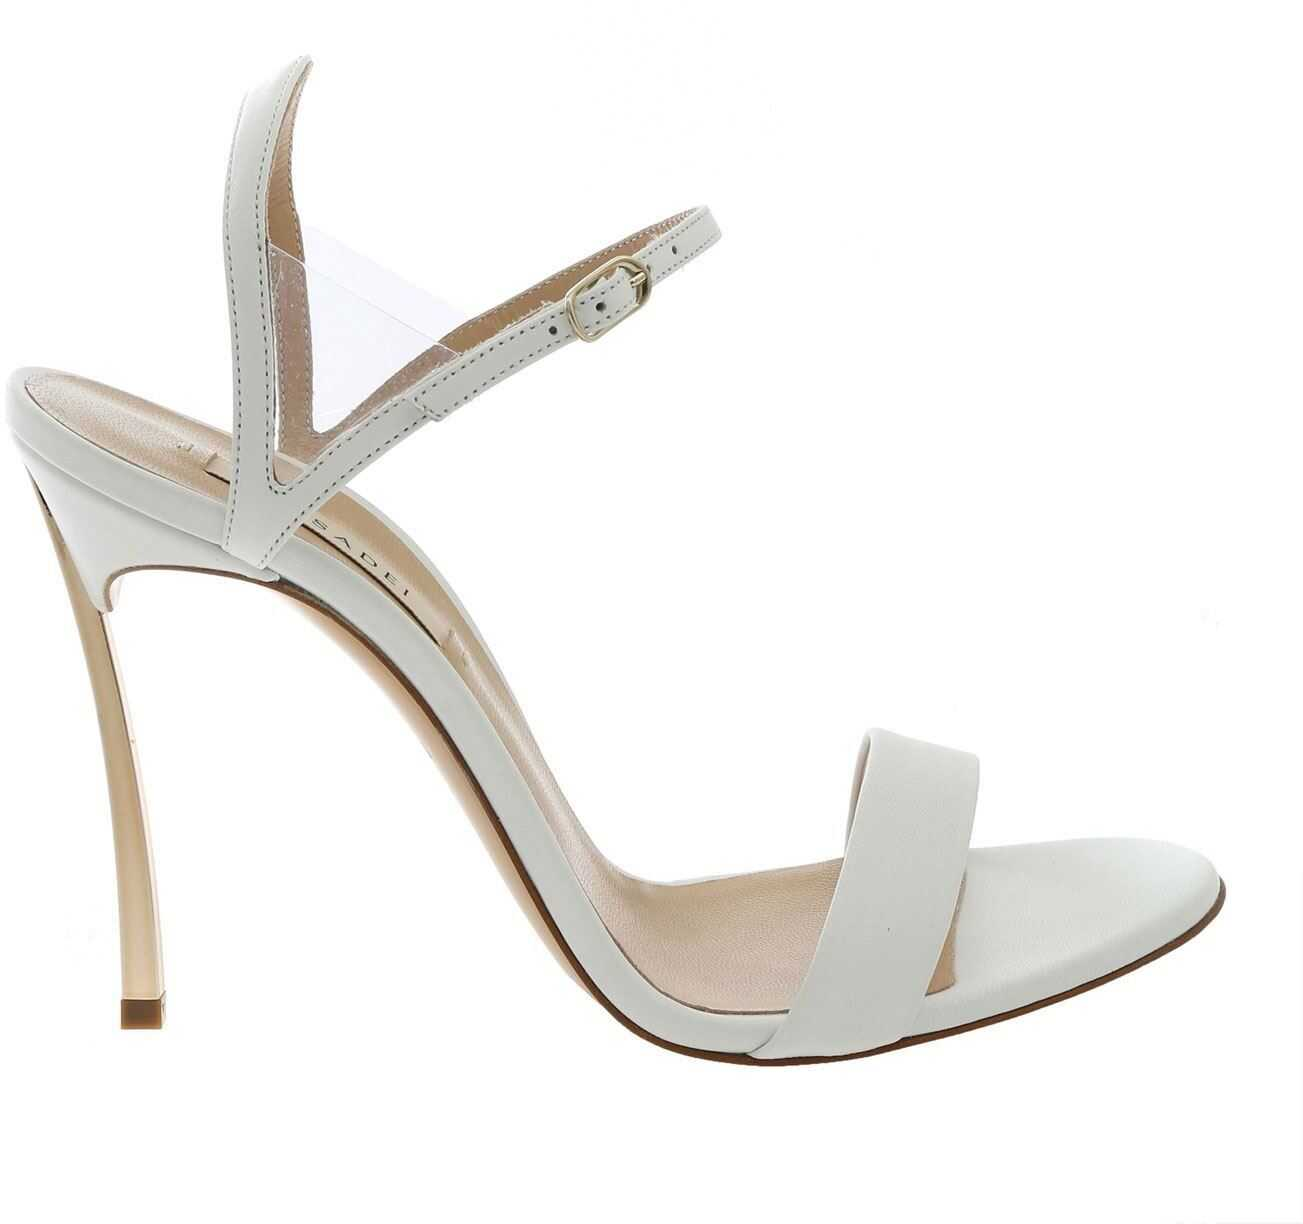 Casadei Blade Sandals In White White